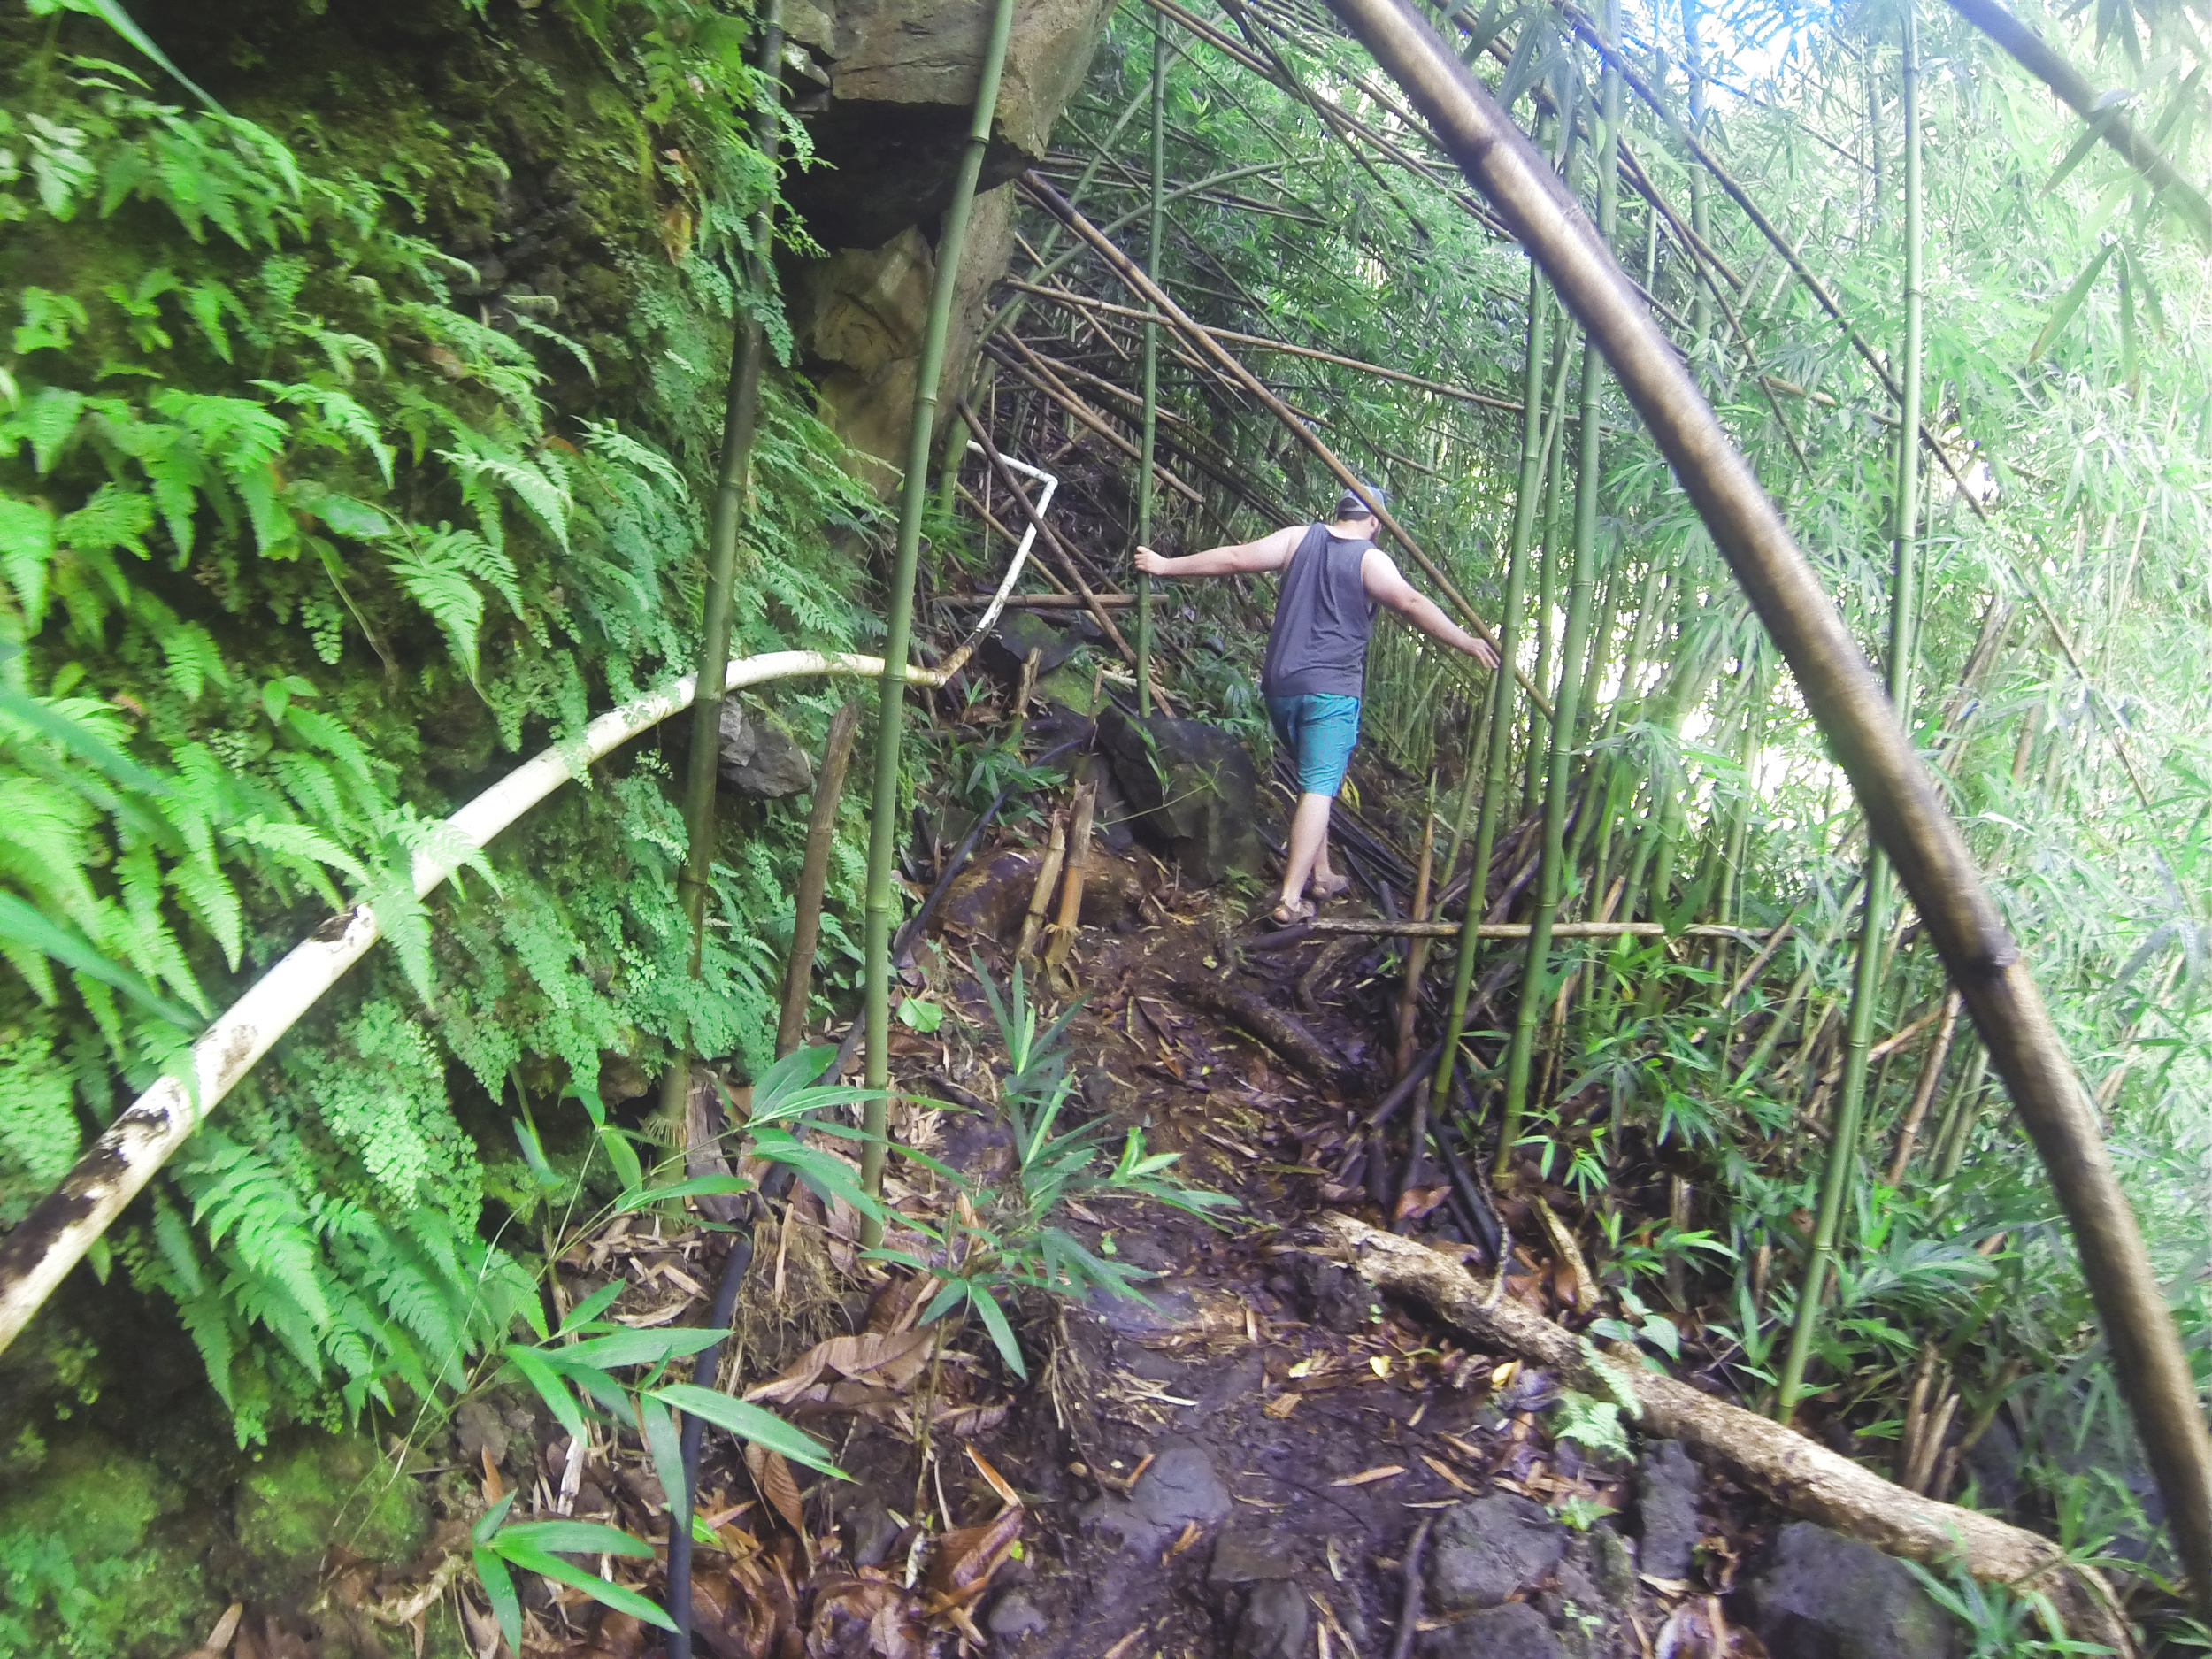 We found a swimming hole about 10 miles in and took the wrong path in. ty took a slip but was fortunately fine.